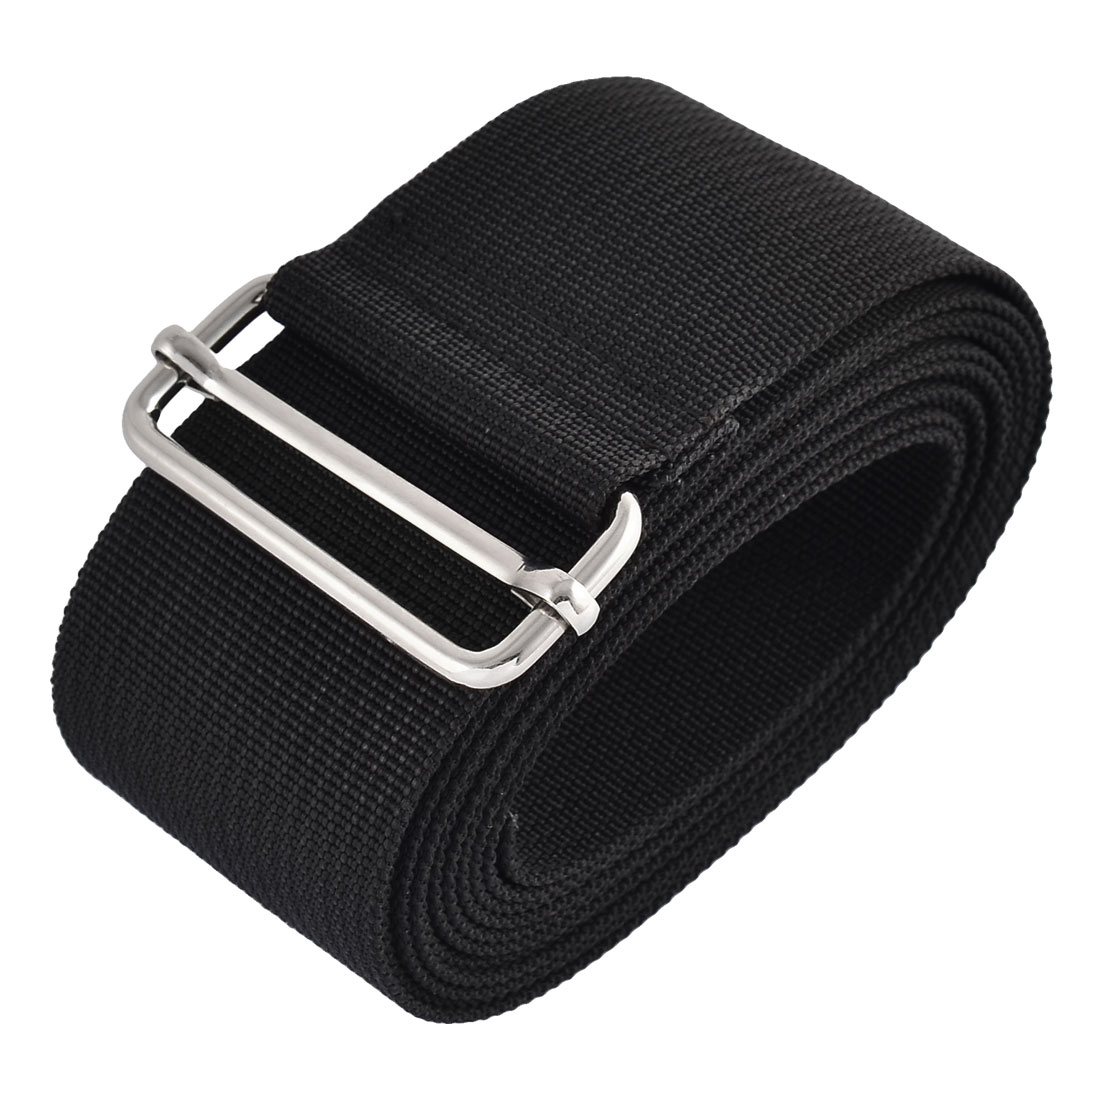 Household Travel Nylon Adjustable Suitcase Luggage Strap Belt Buckle Black 2.5M Length